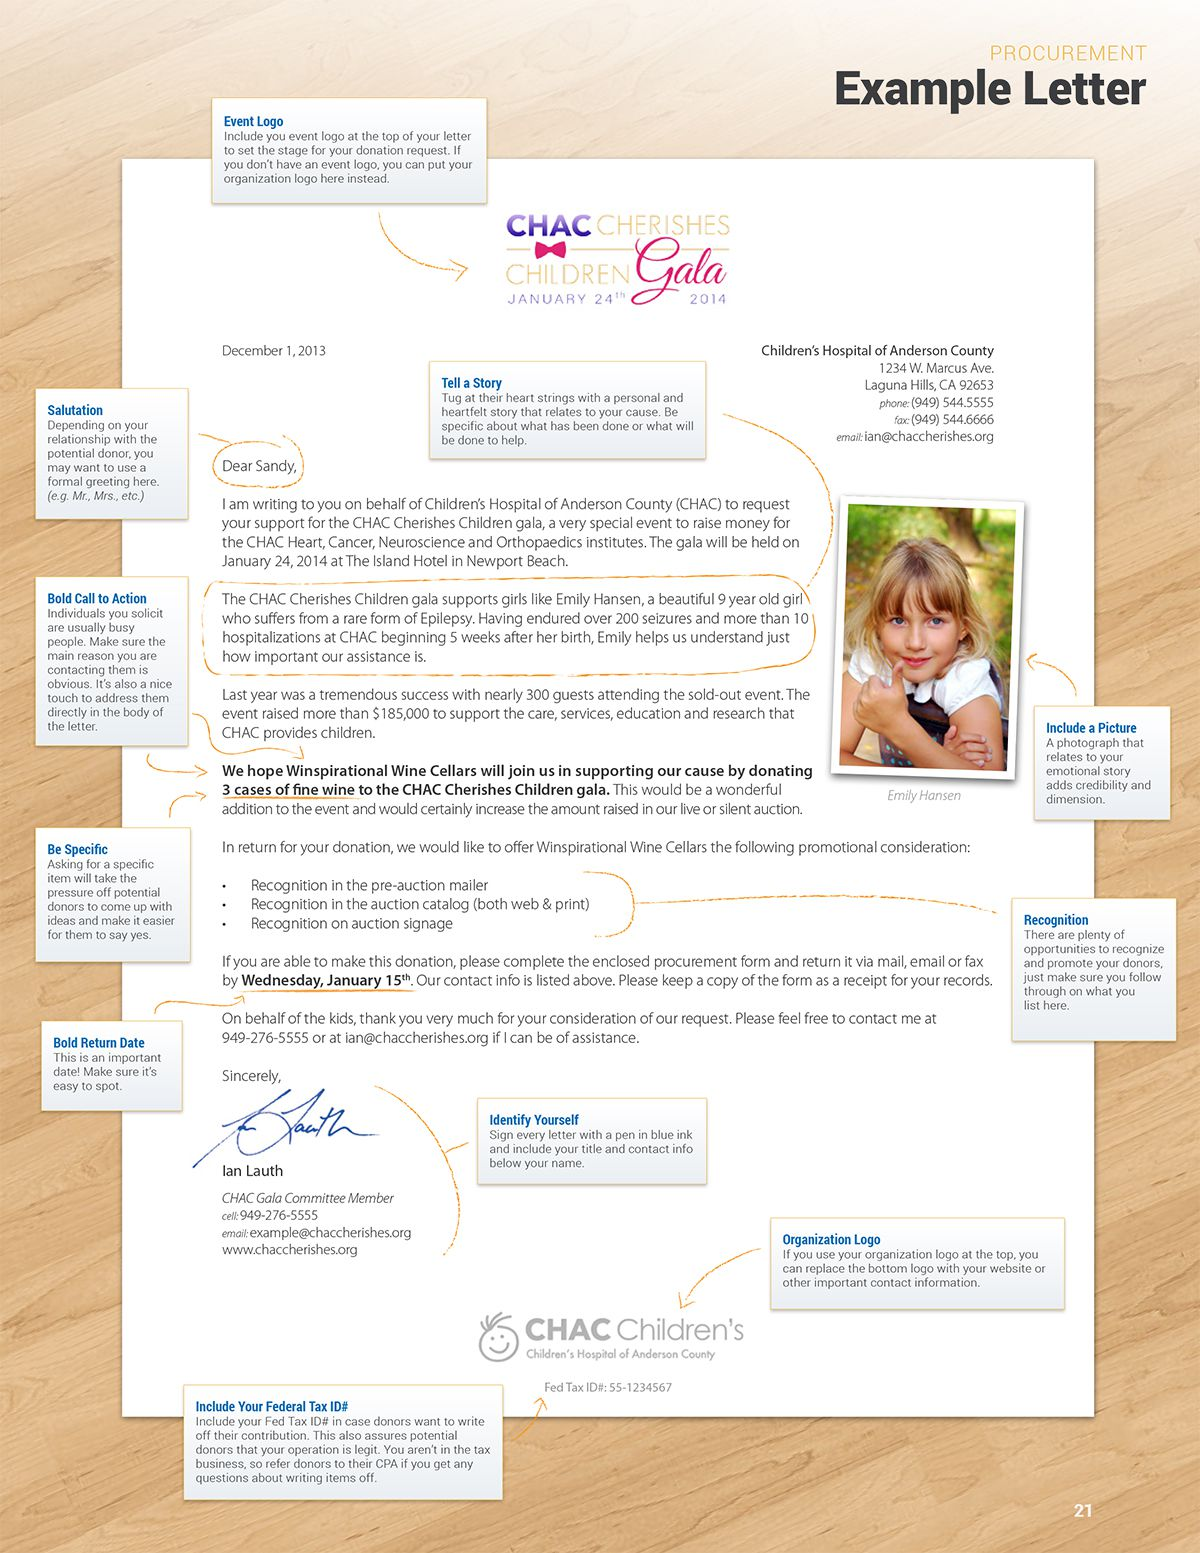 008 Amazing Silent Auction Donation Certificate Template Image Full